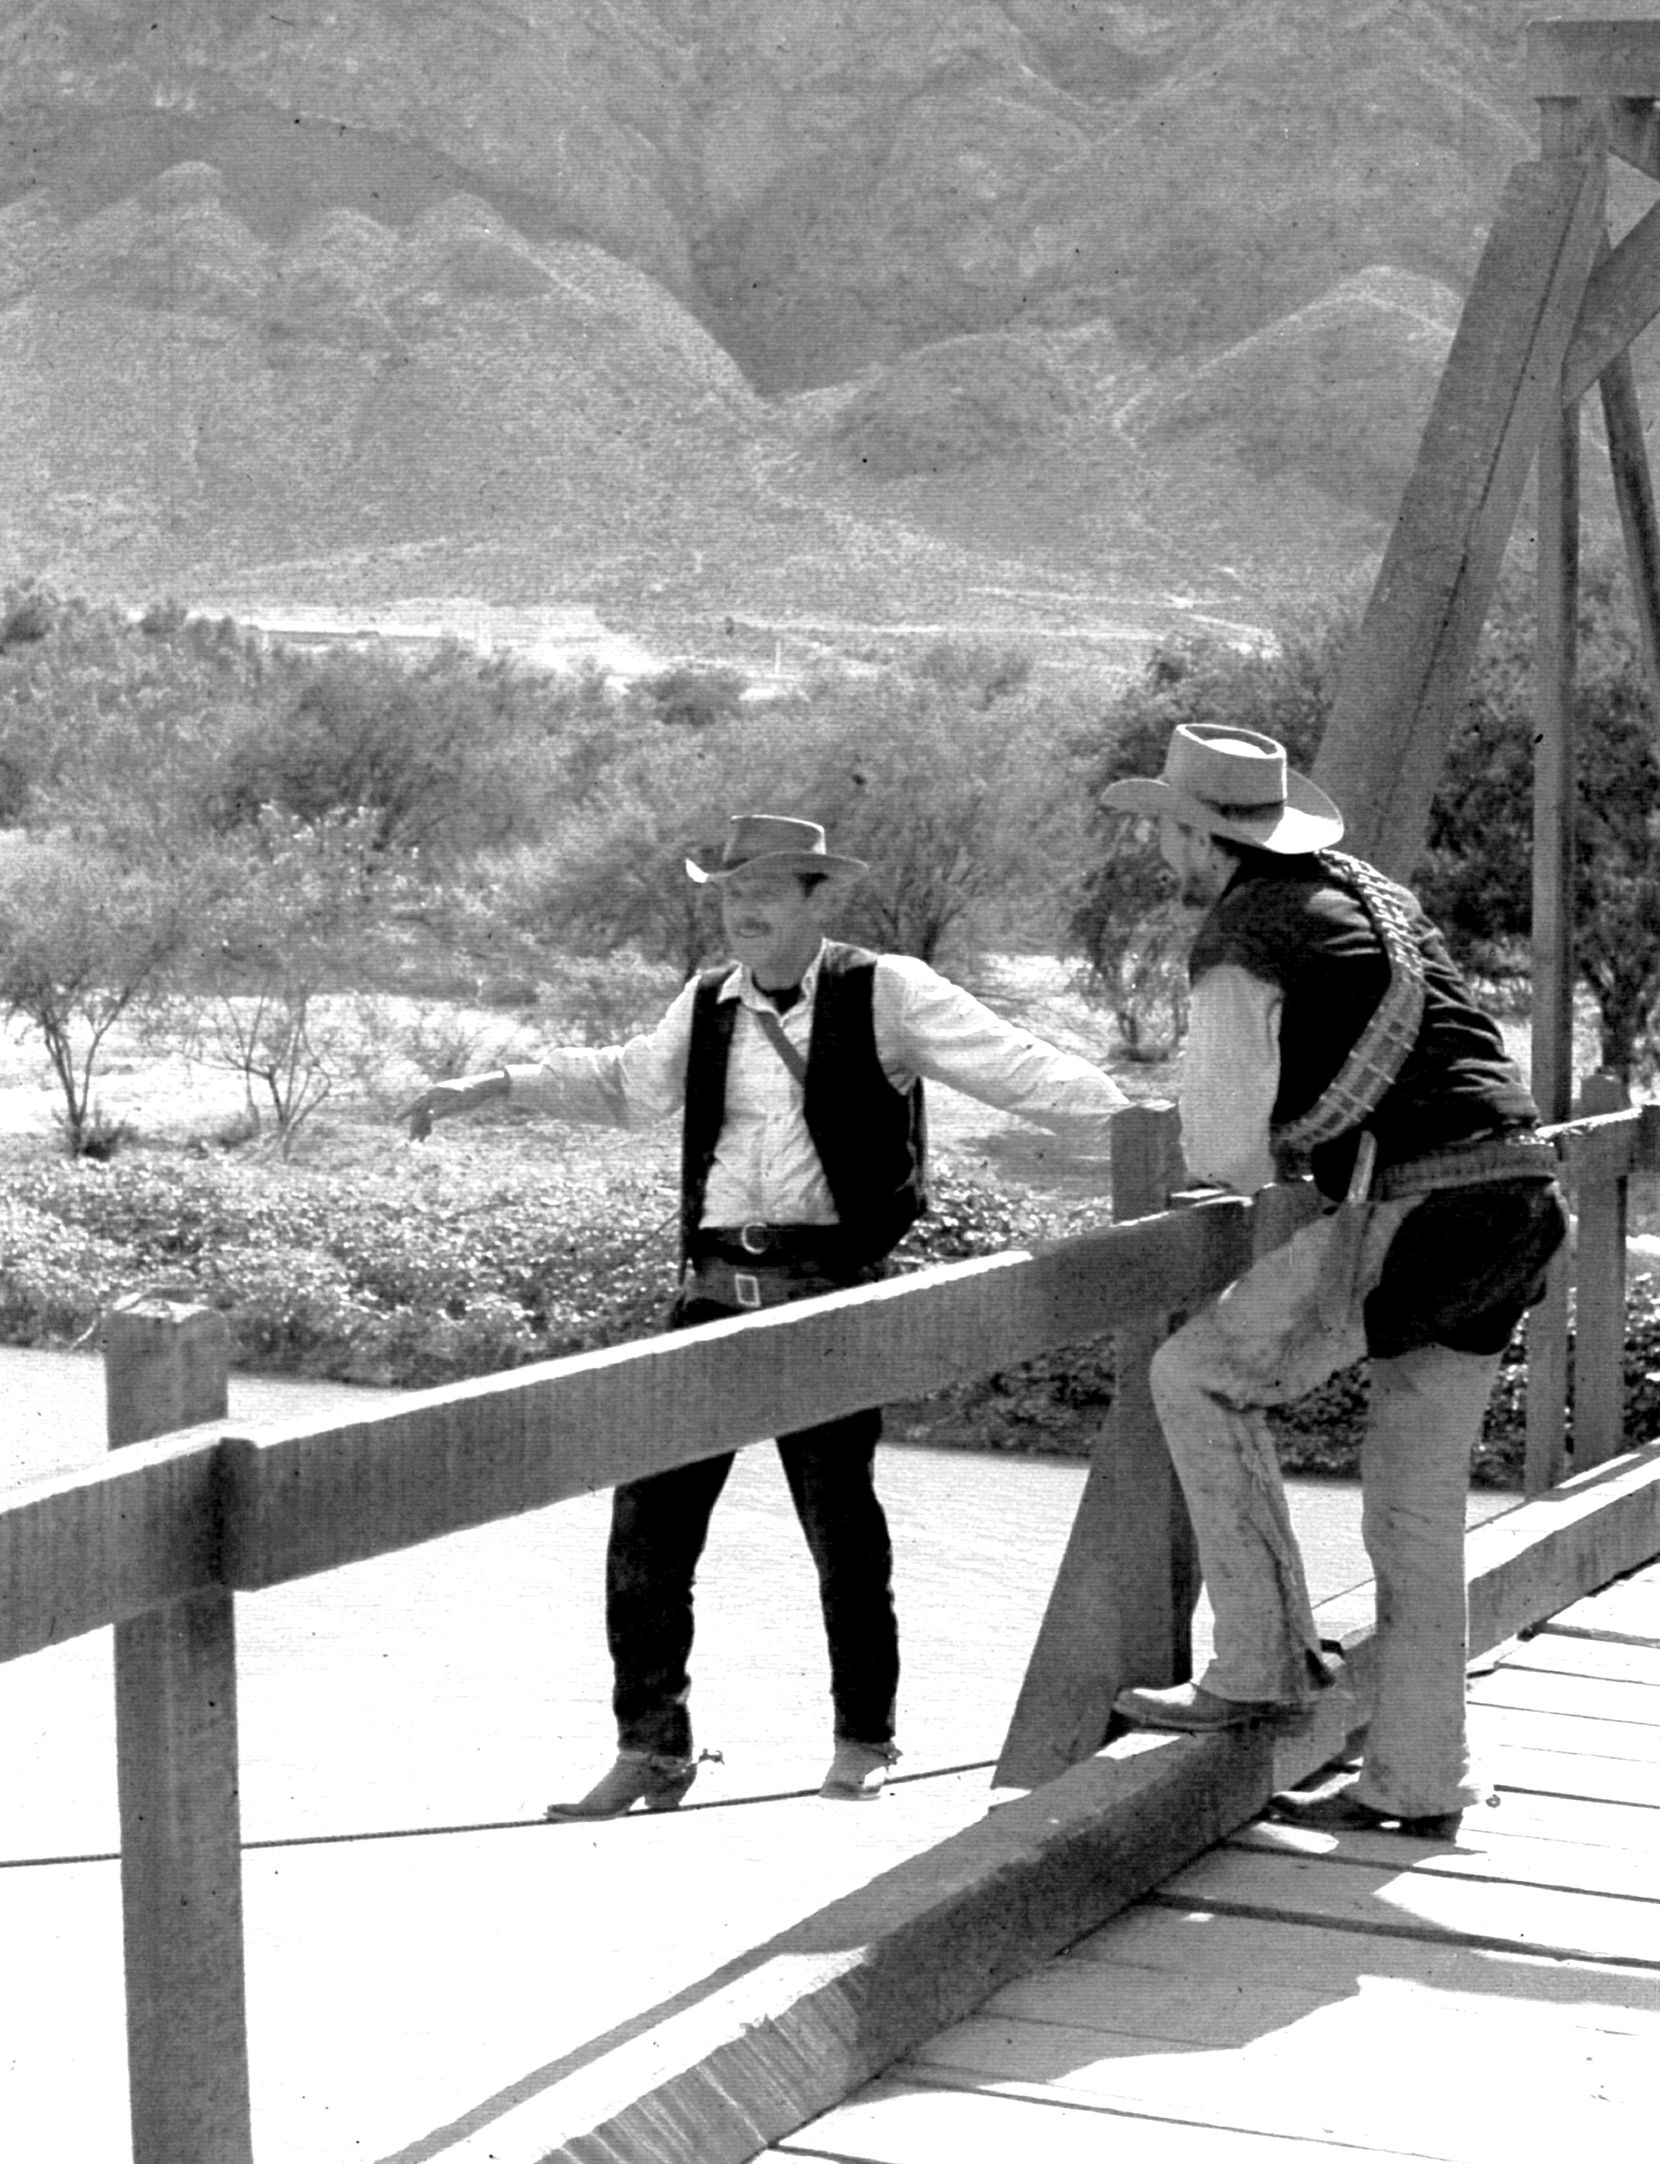 Off-camera and behind-the-scenes, actor William Holden (left) plays daredevil by tightrope-walking a support cable for the bridge that will be blown up in the movie The Wild Bunch.